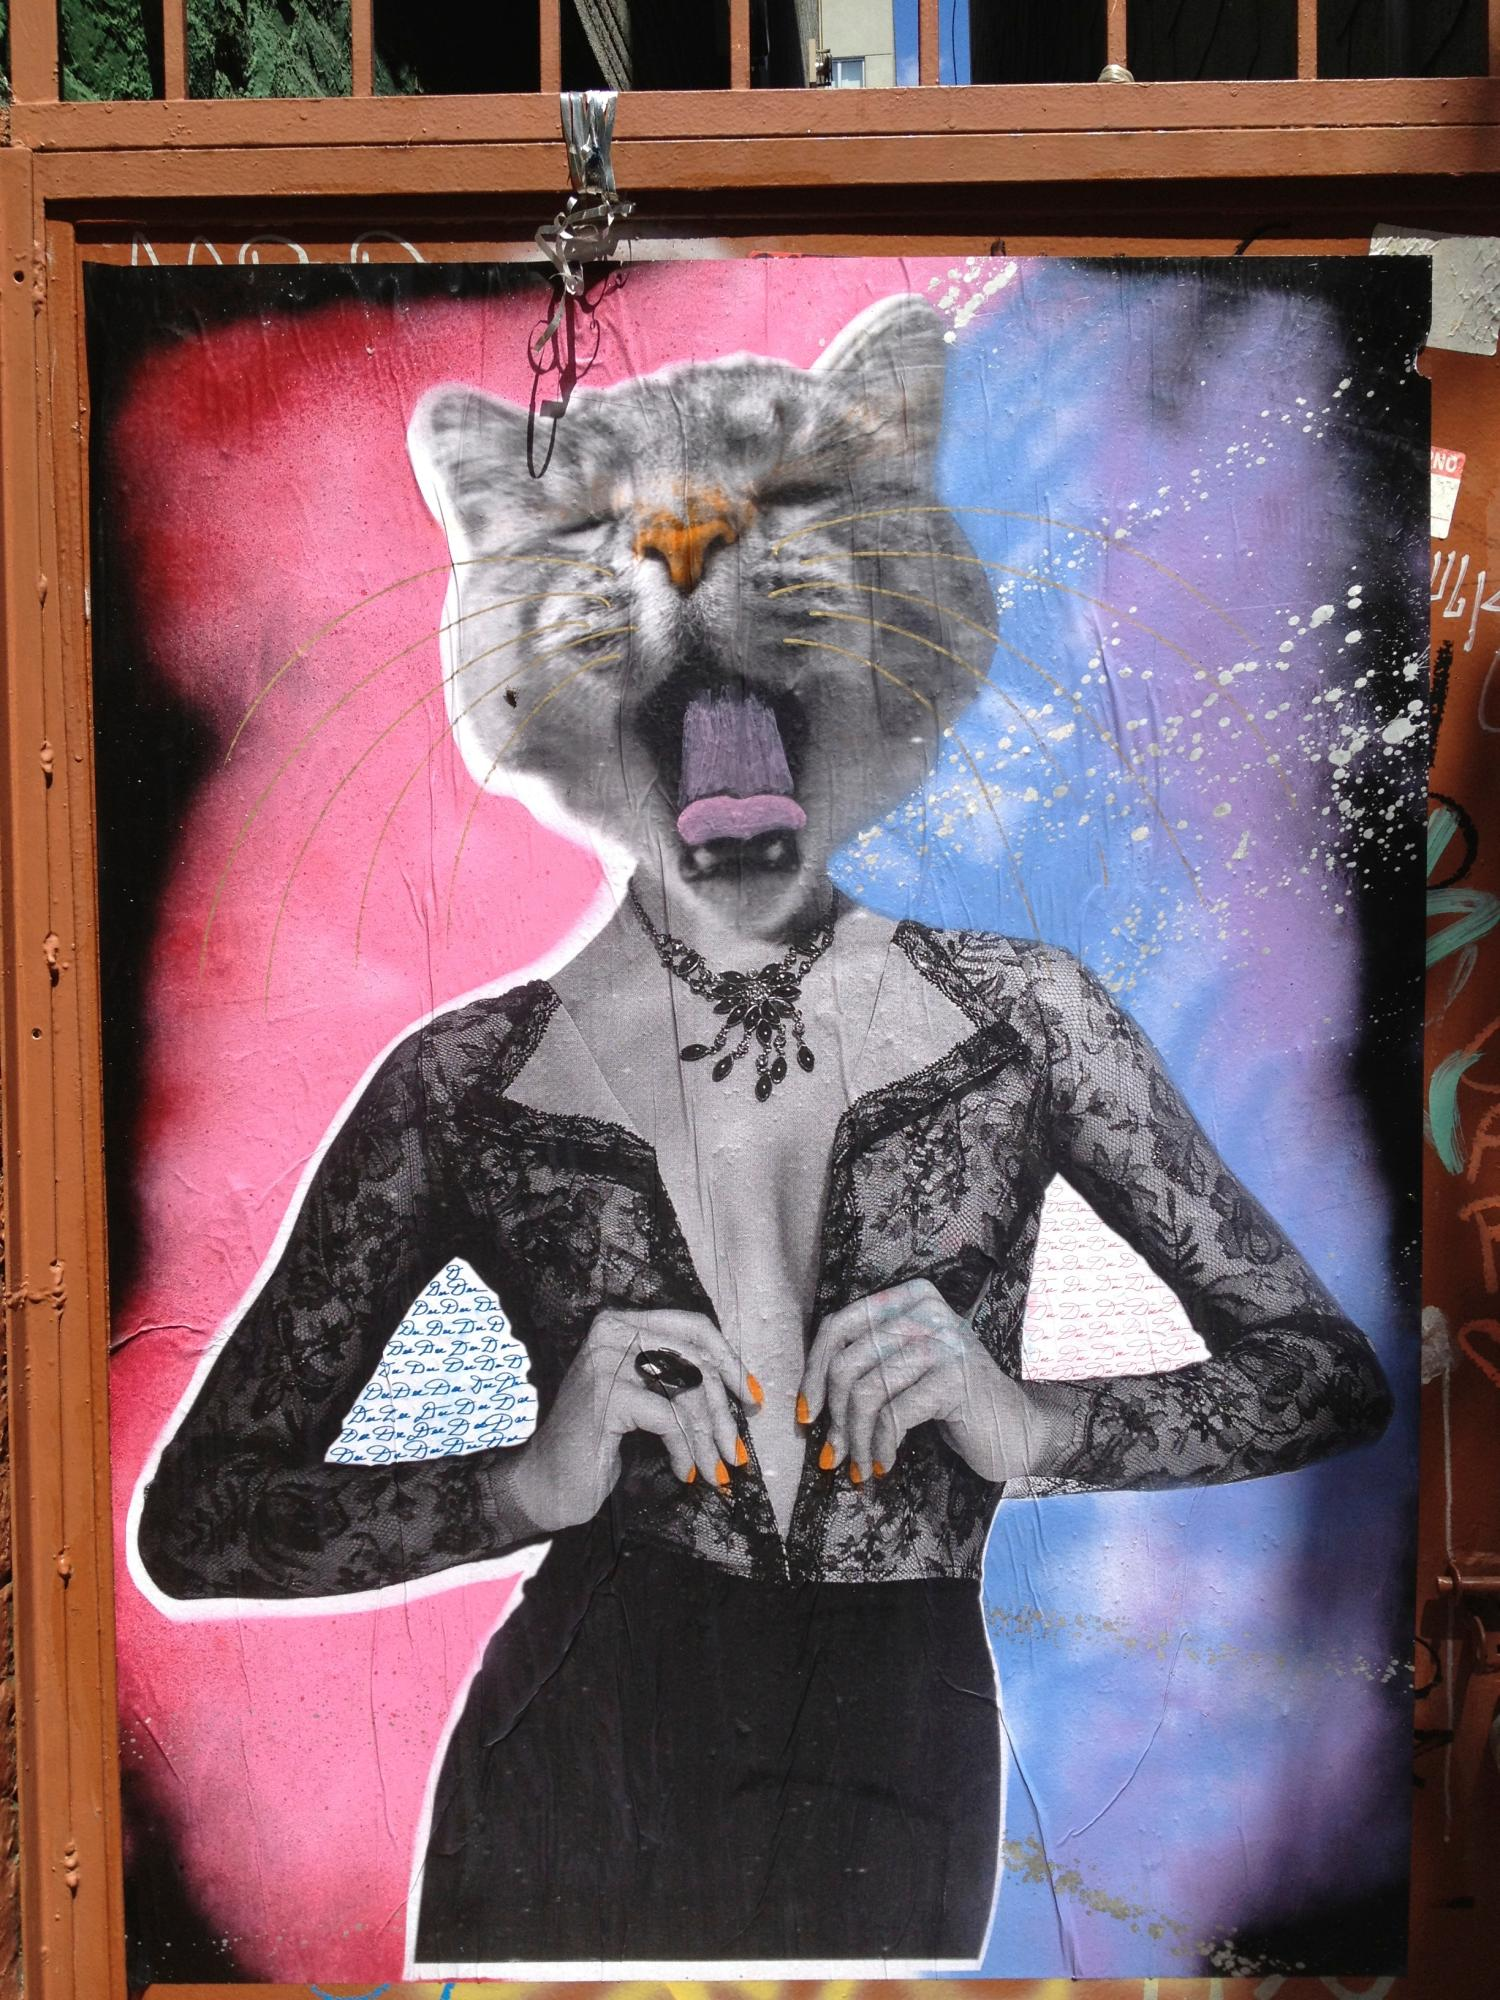 DeeDee_Street_Art_Cat_Brooklyn.jpg